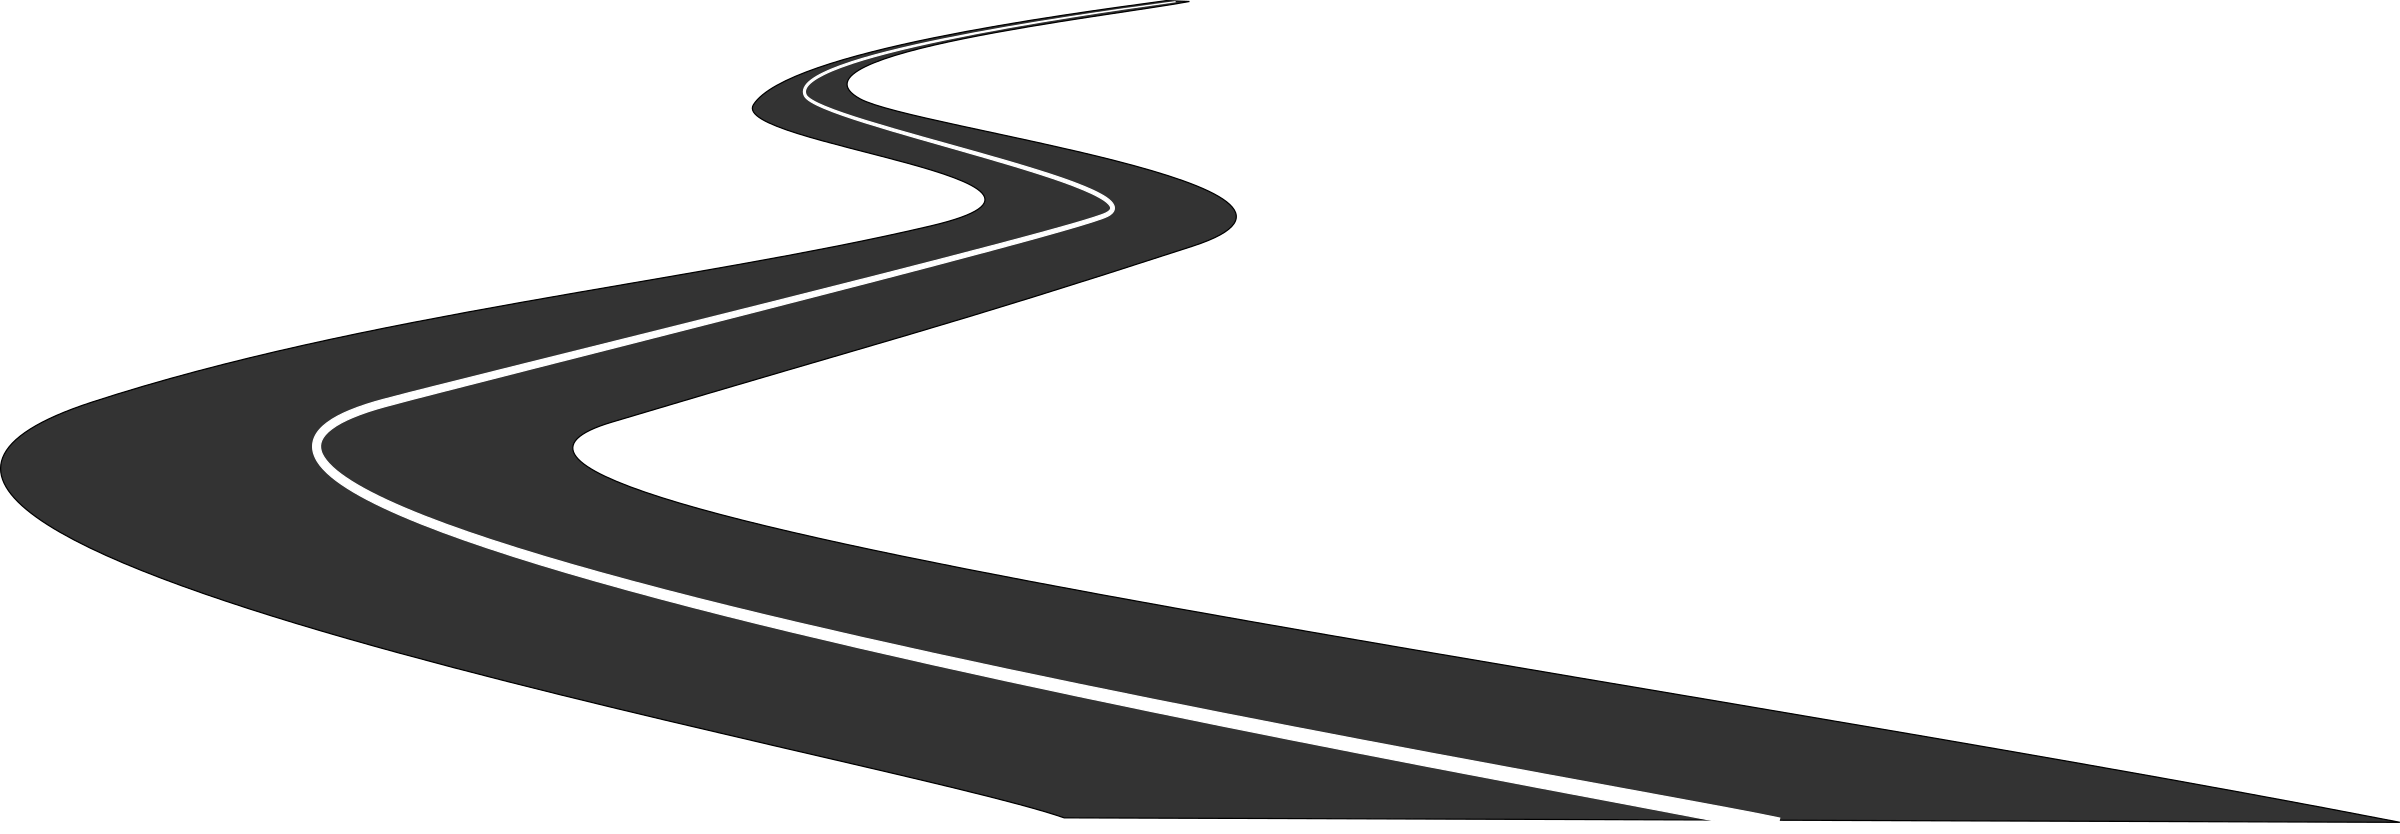 vector royalty free Winding Road Silhouette at GetDrawings